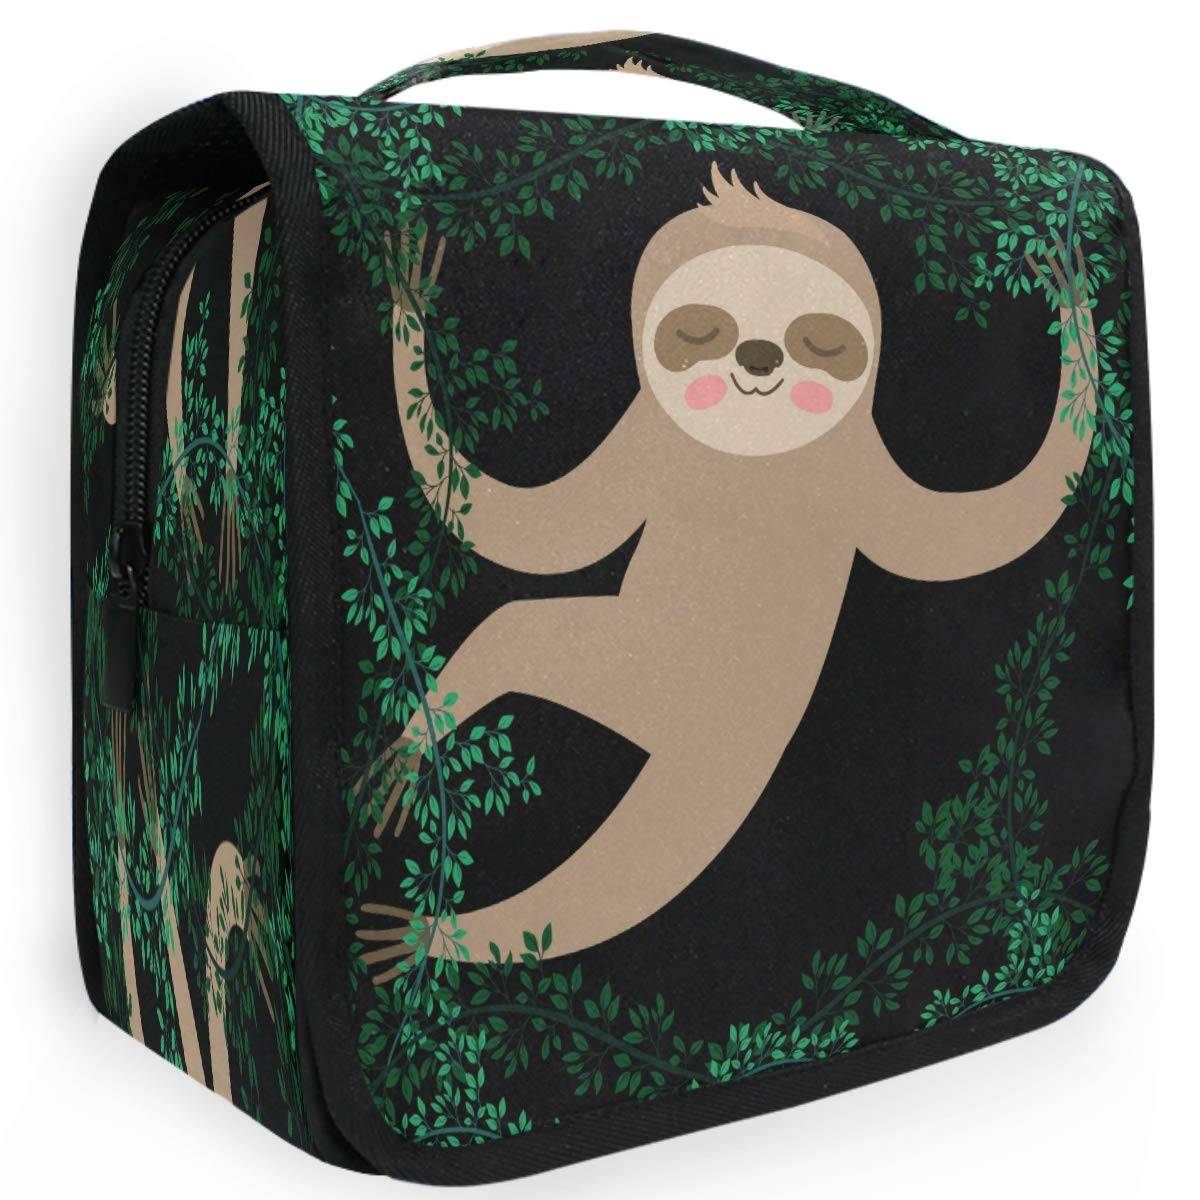 Olinyou Cute Sloth Tree Green Leaf Cartoon Animal Travel Toiletry Cosmetic Bag Hanging Shower Makeup Bag Pouch Portable Train Tote Case Organizer Storage For Women Girls